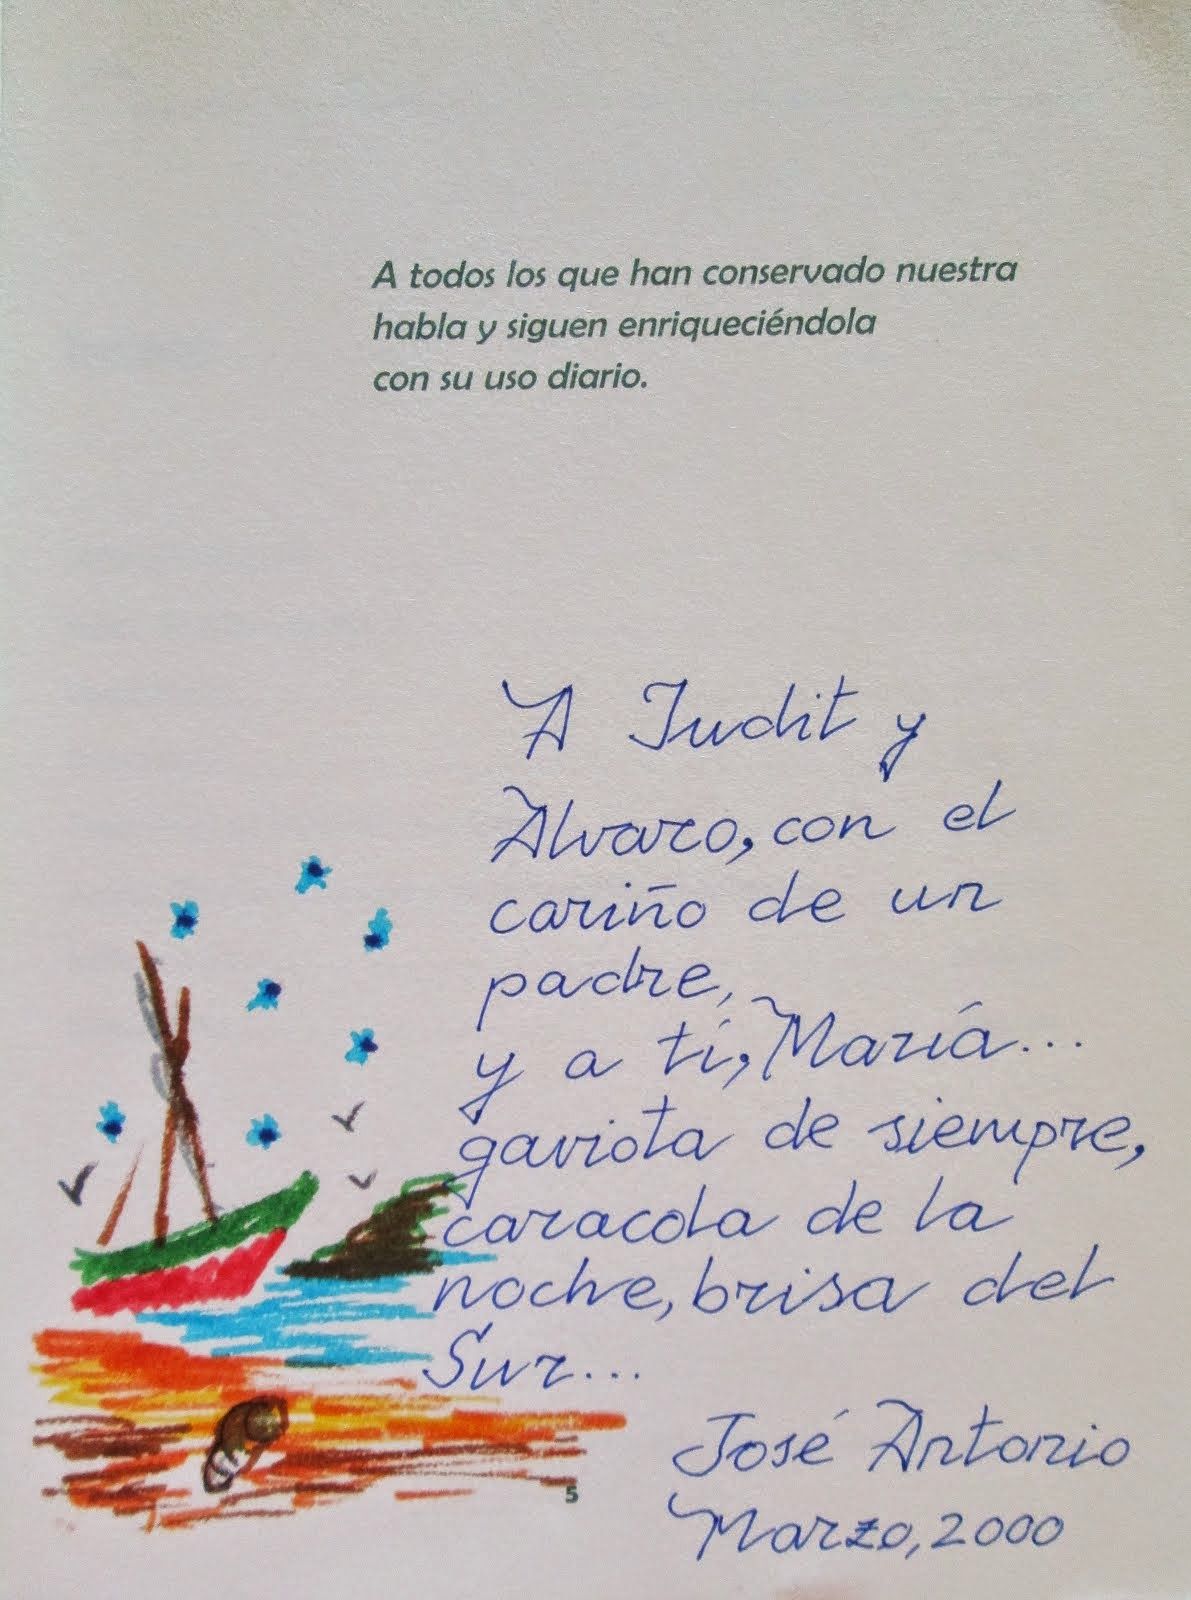 DEDICATORIA DE J. ANTONIO